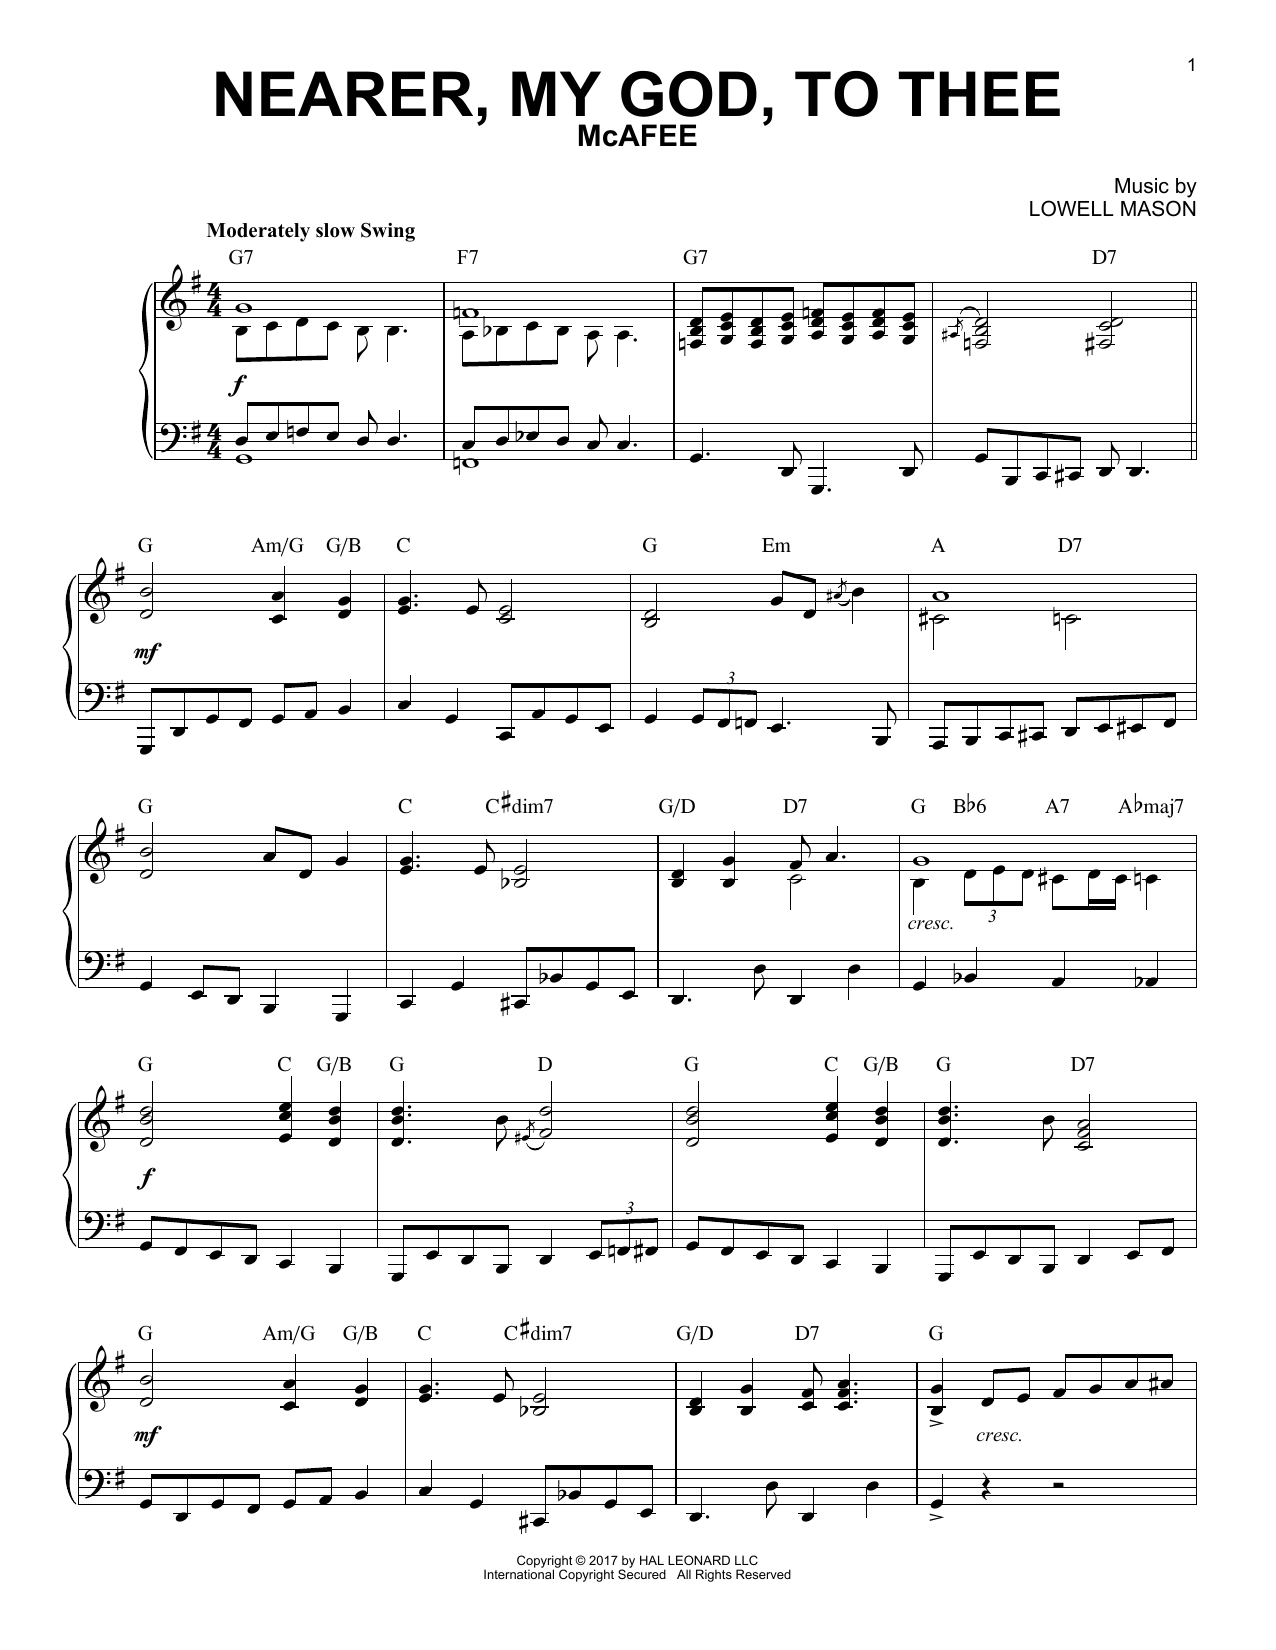 Lowell Mason Nearer, My God, To Thee [Jazz version] sheet music notes and chords. Download Printable PDF.